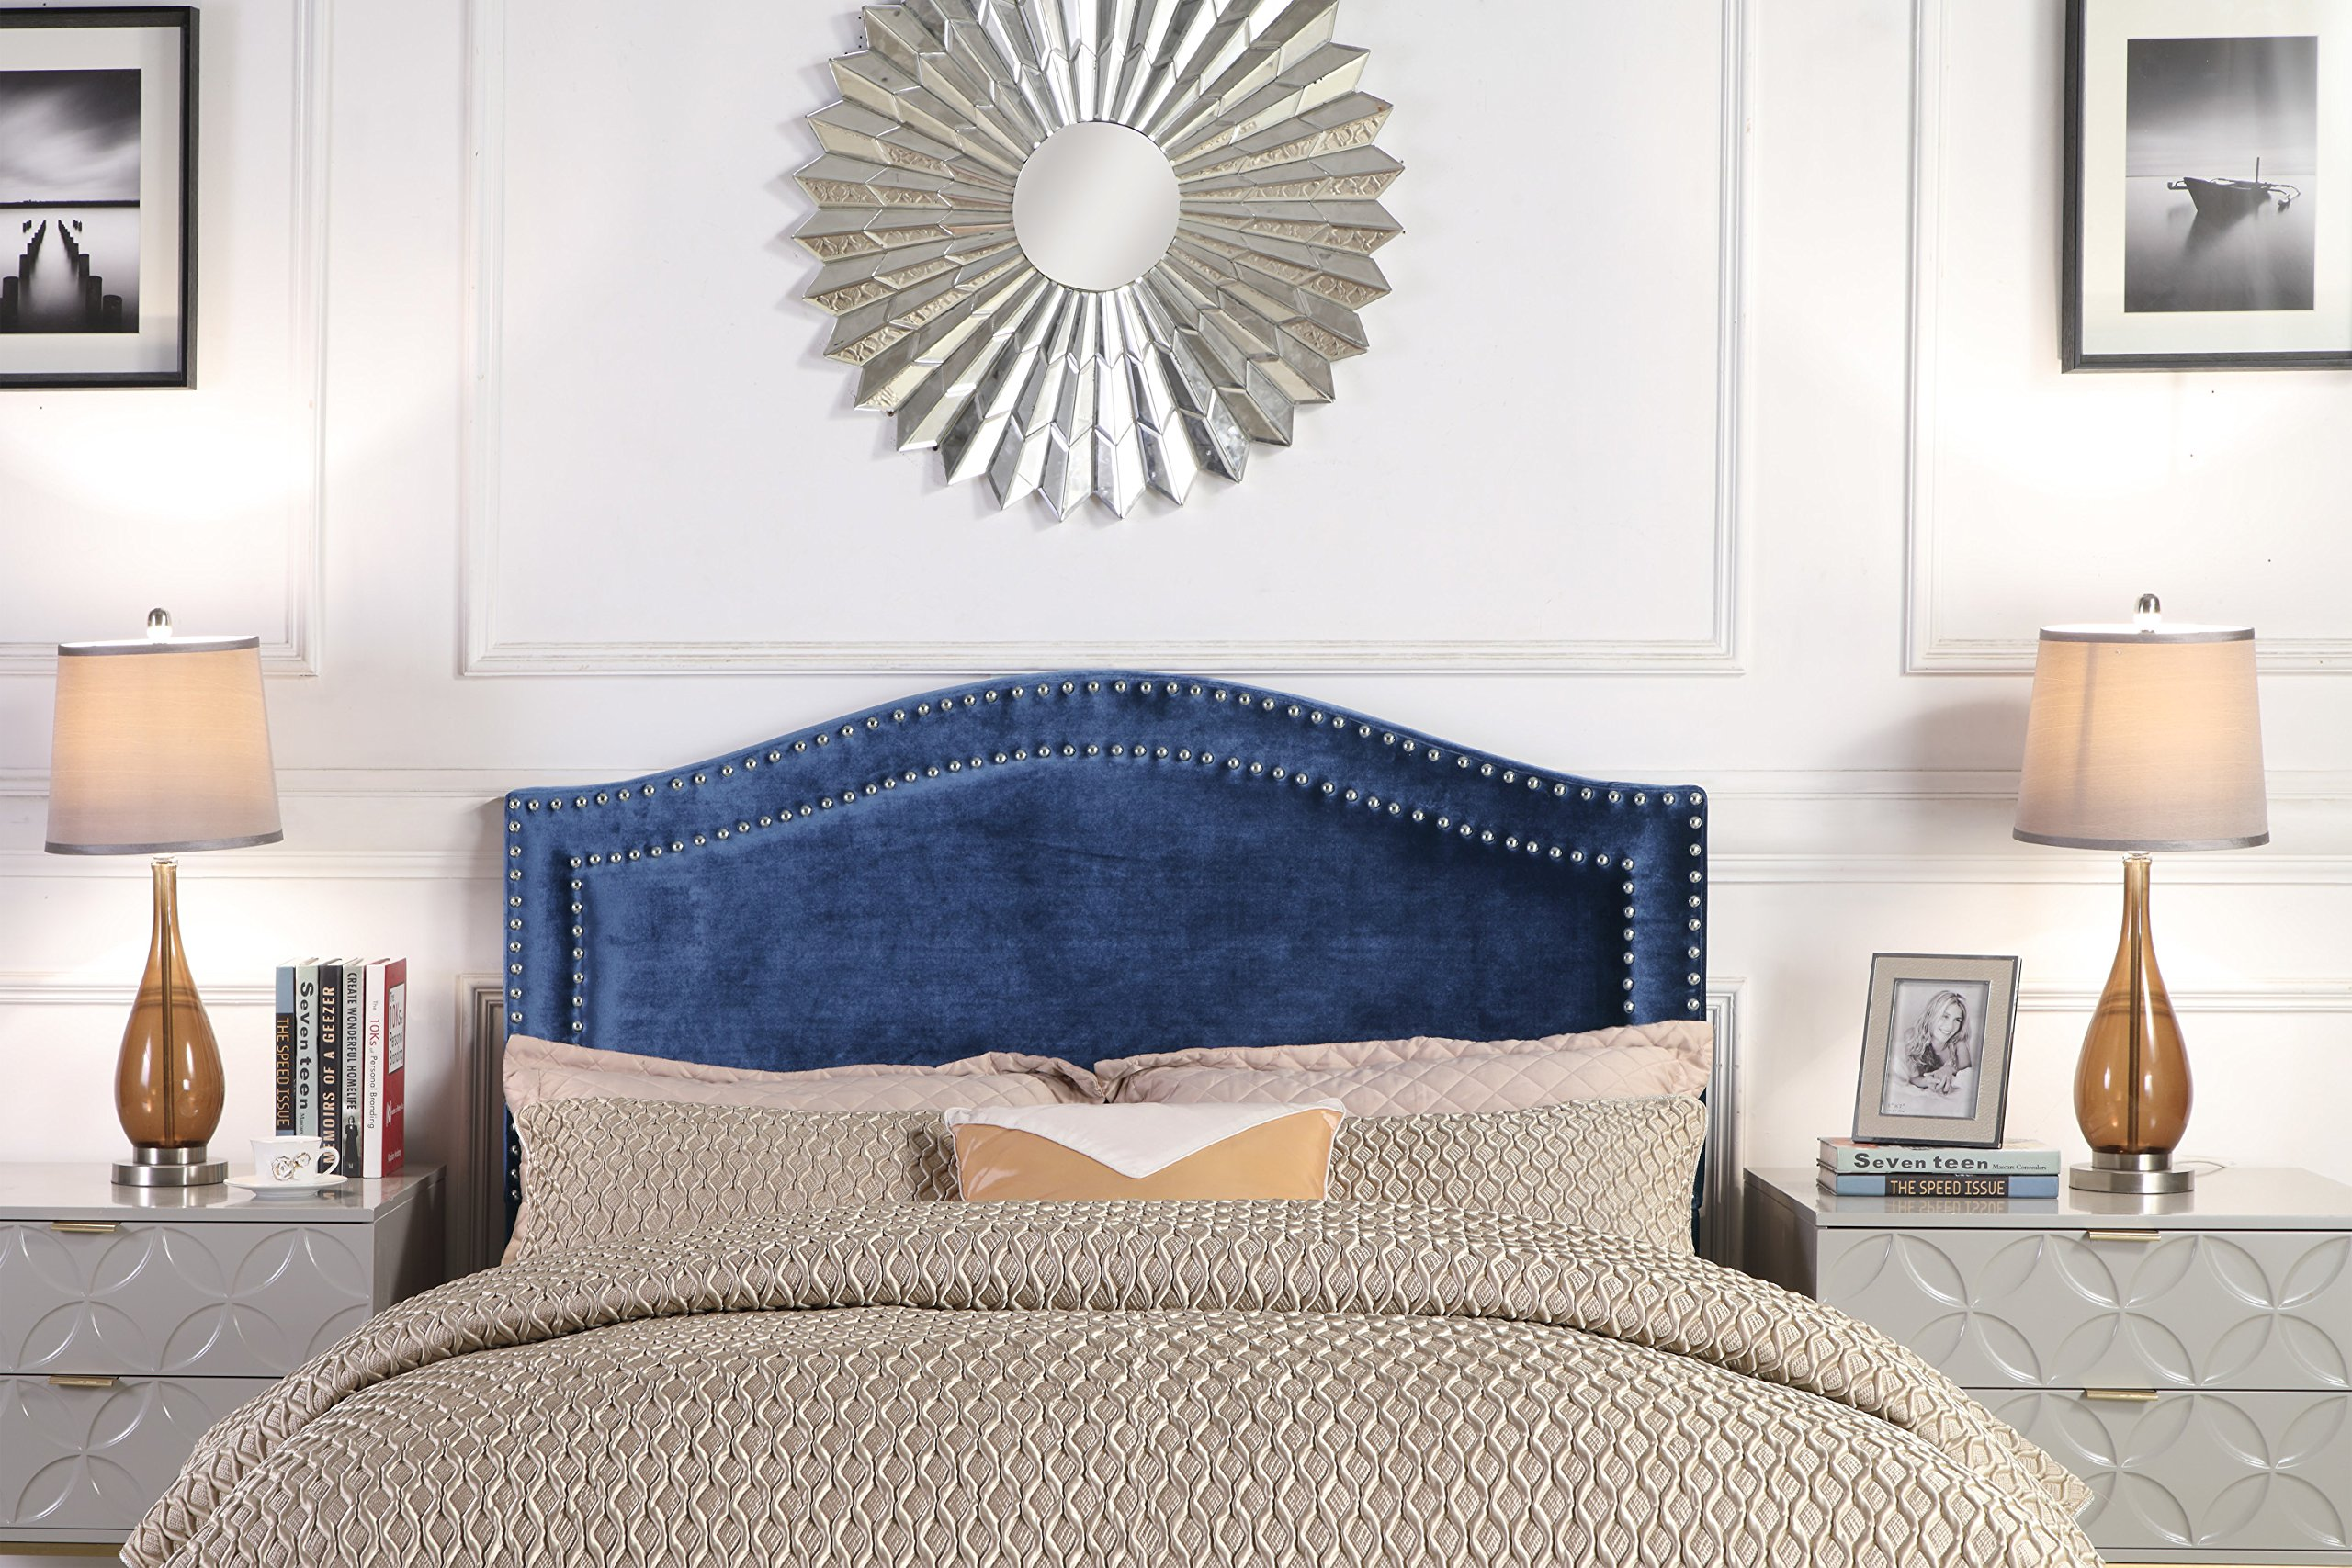 Iconic Home Minerva Headboard Velvet Upholstered Double Row Silver Nailhead Trim, Modern Transitional, Twin, Navy by Iconic Home